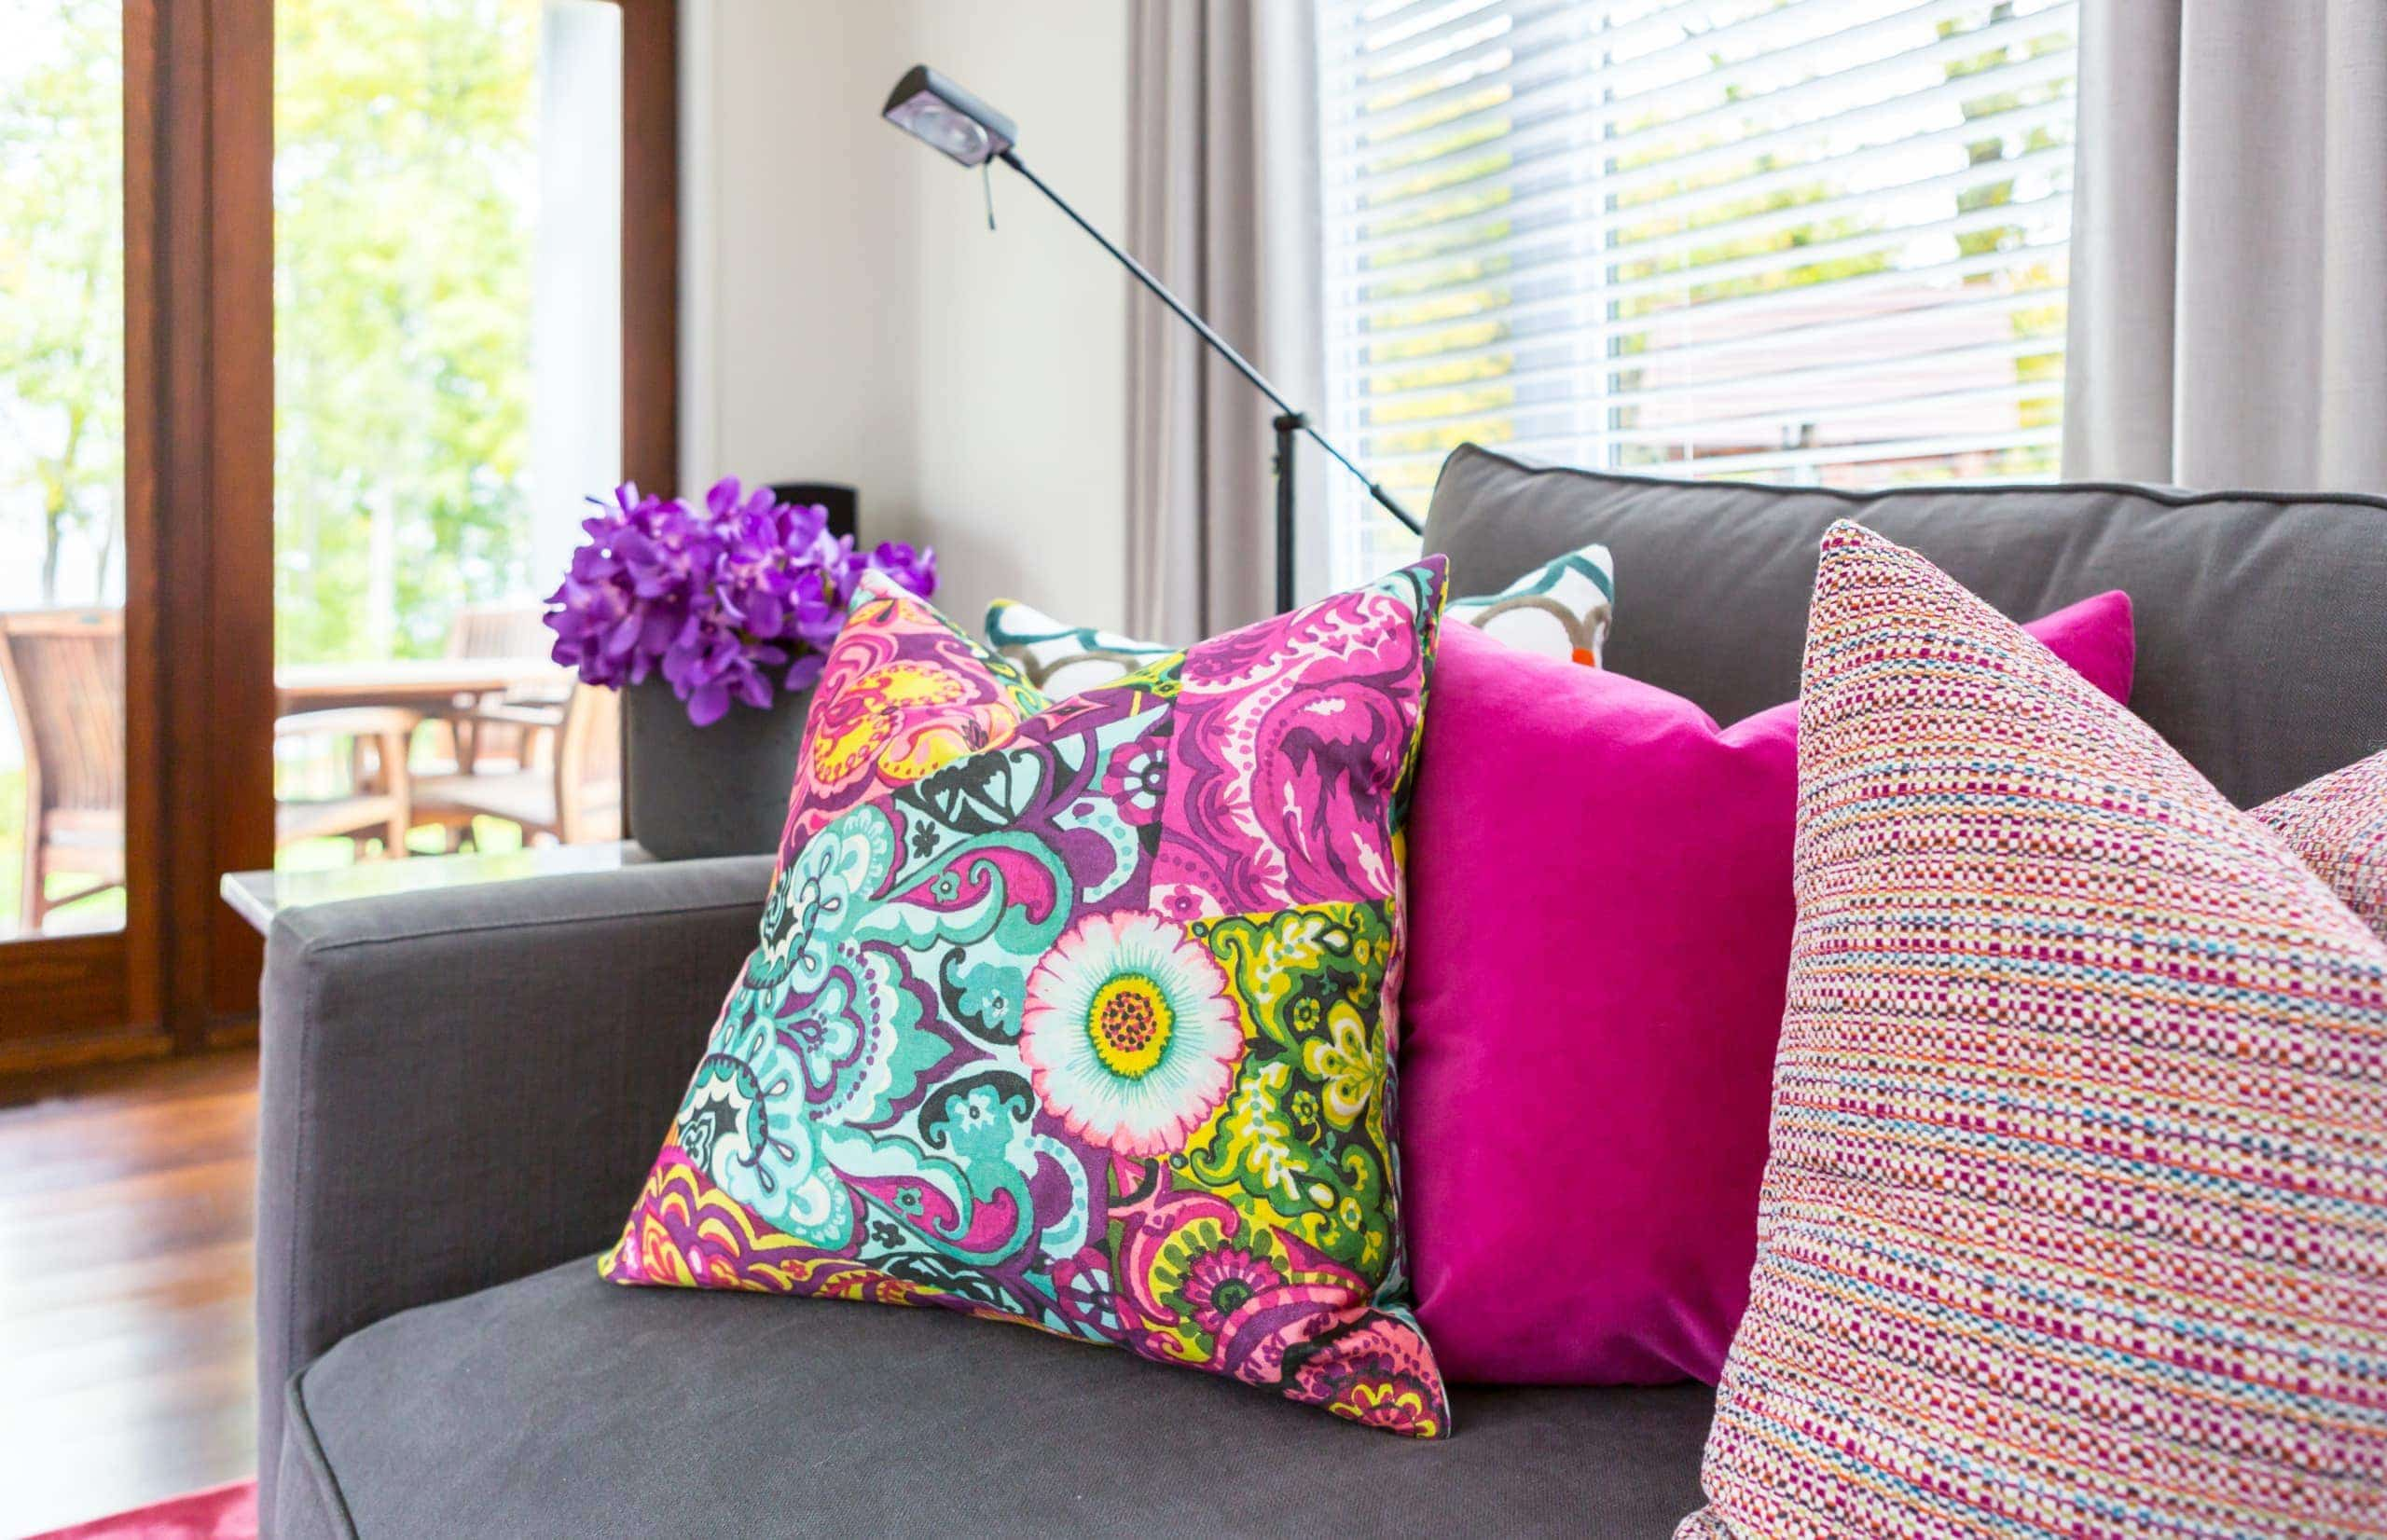 Colorful pillow with a floral pattern